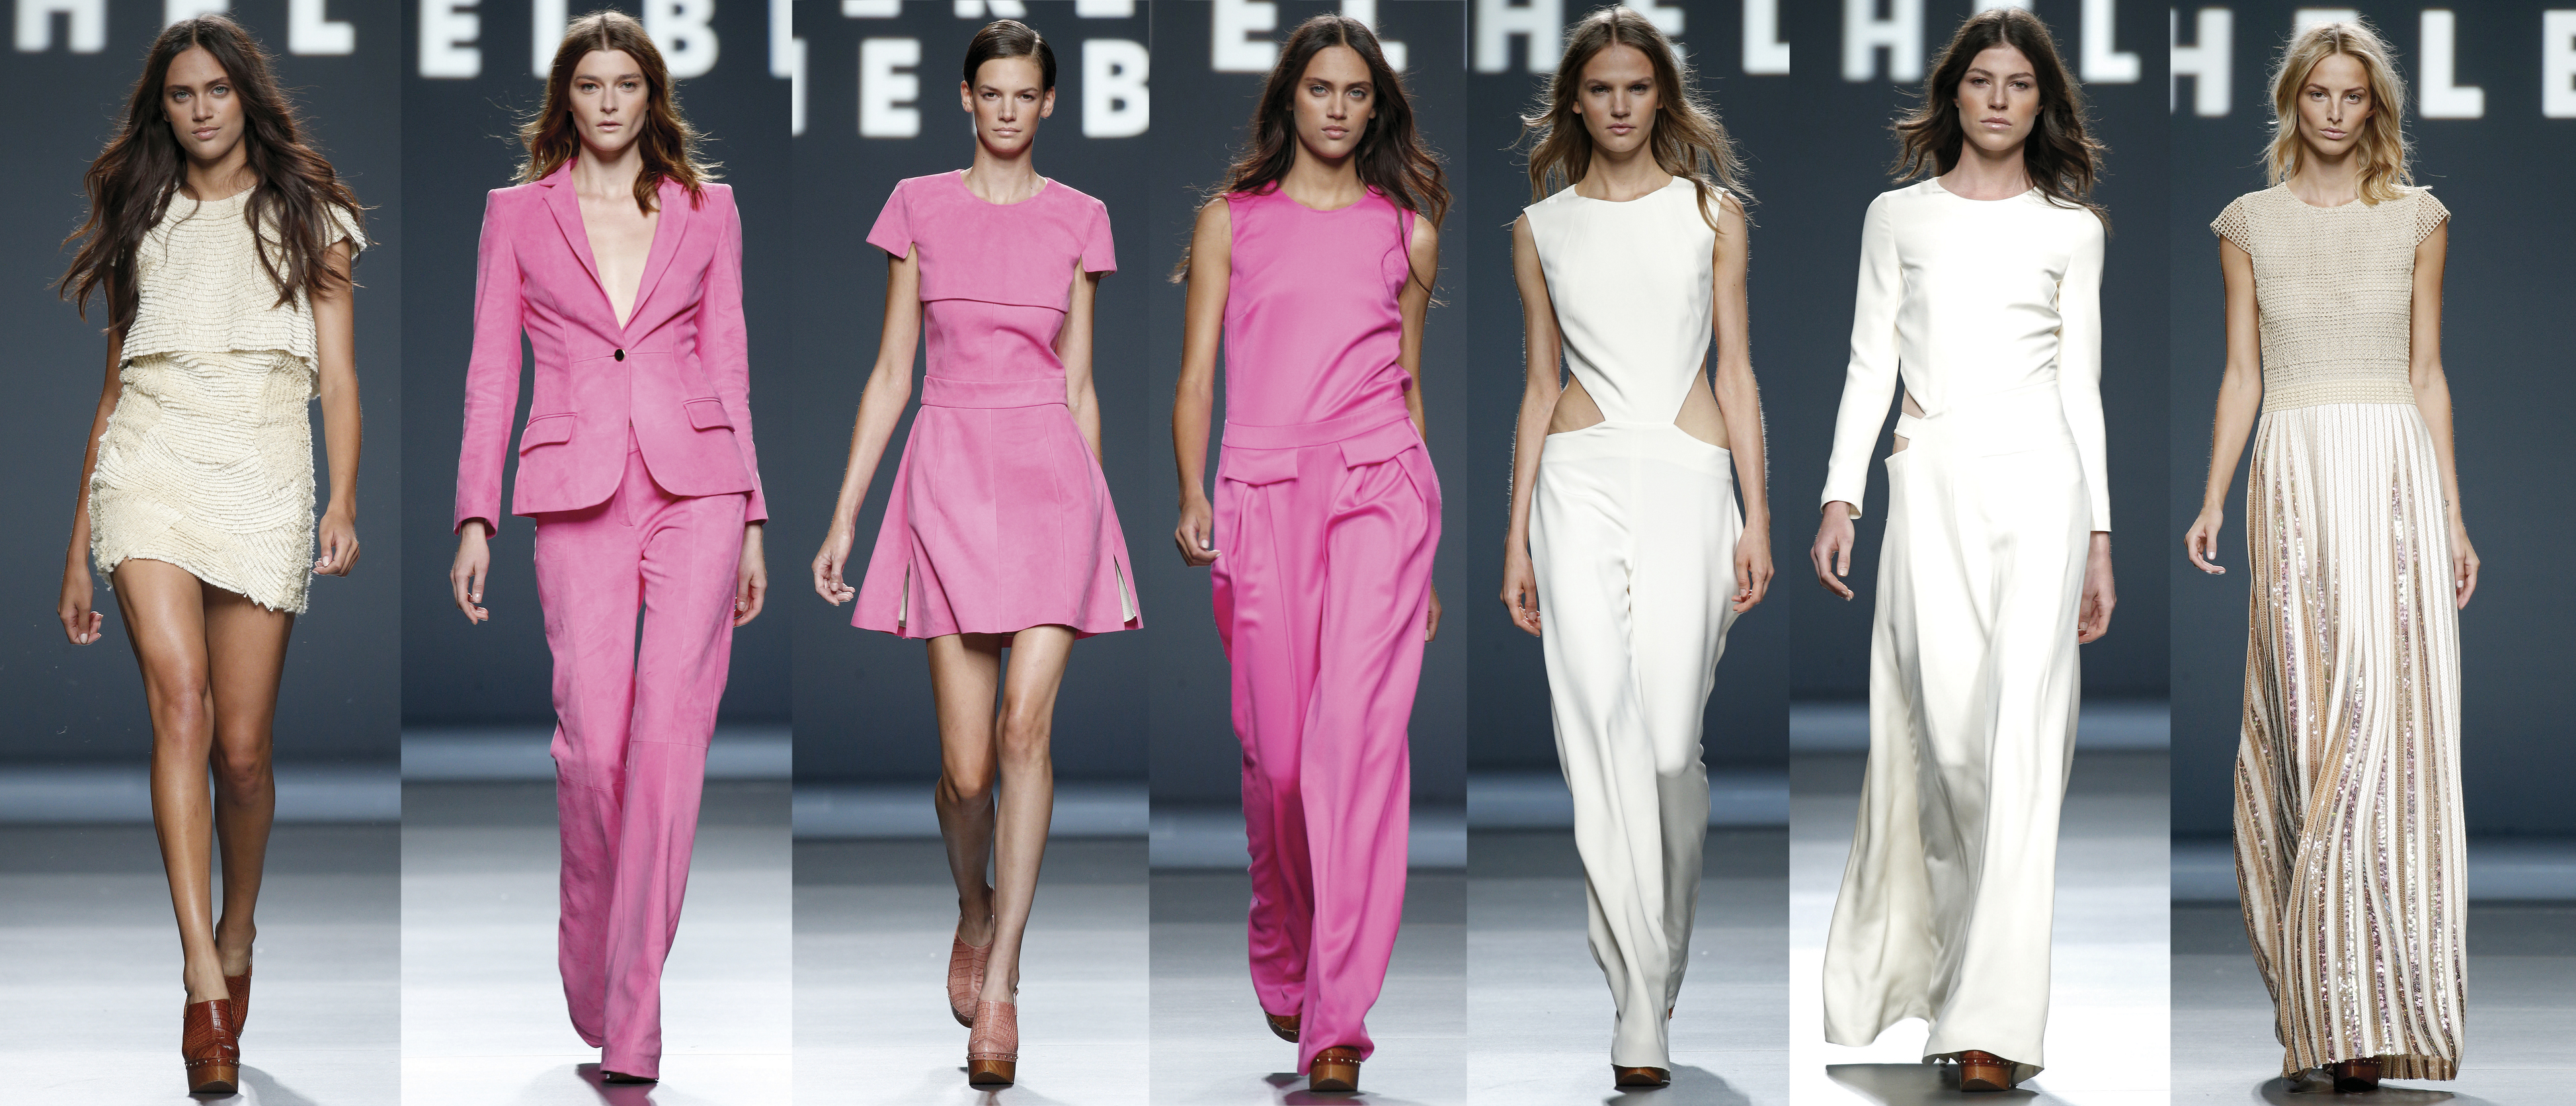 BCN Fashion Place | Página 100